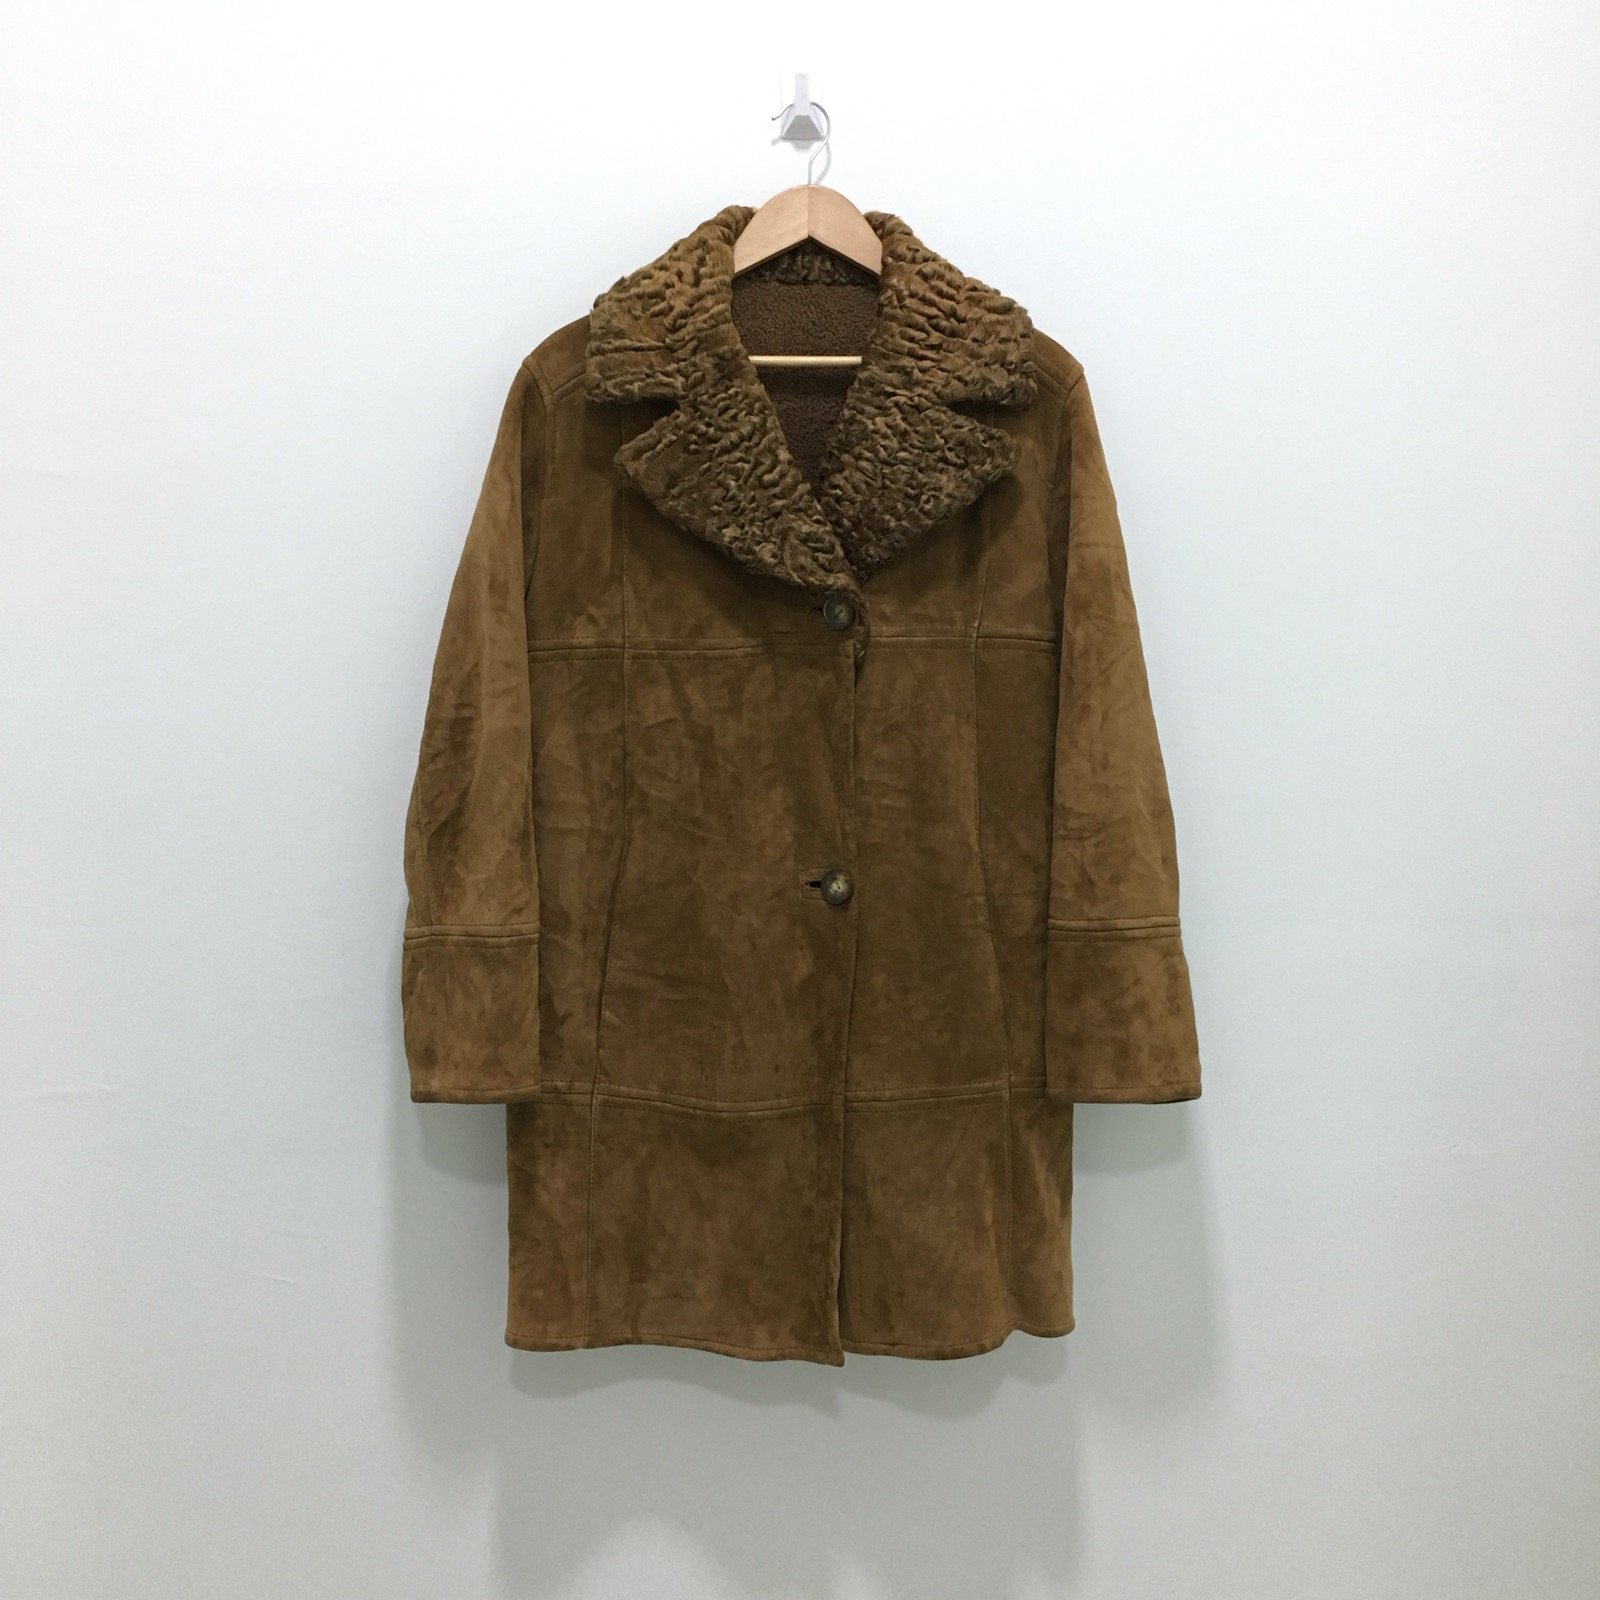 9ad8f7aa41 Sheepskin Coat × Leather Jacket. Stephen Made In Italy Deerskin Leather  Shearling Coat Jacket Fur Collar. Size  US L ...